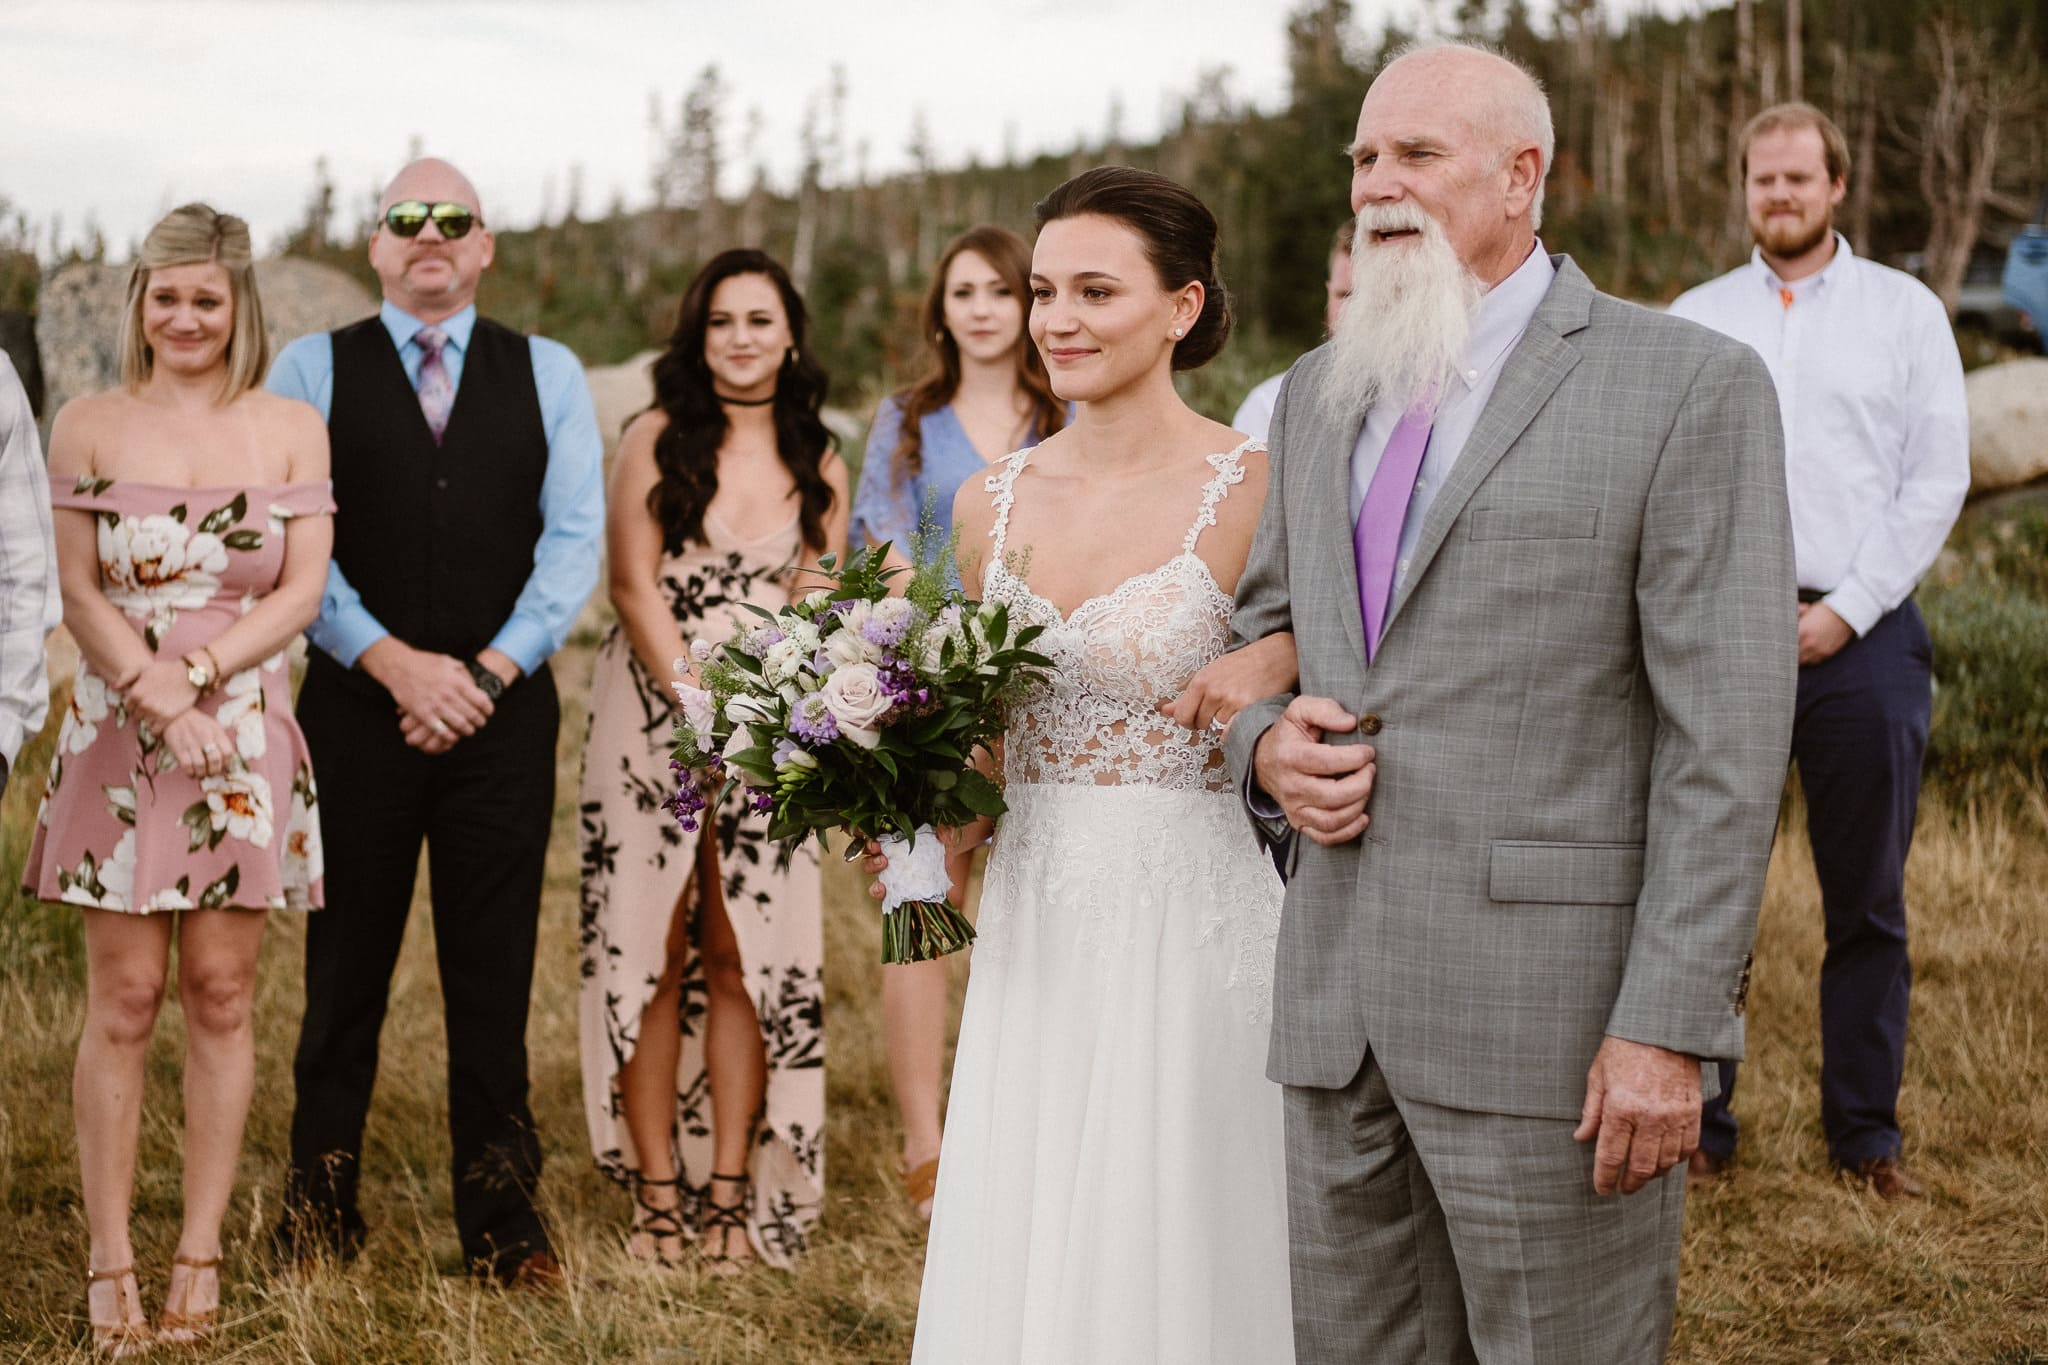 Bride walking down aisle with her father at Colorado mountain elopement, Boulder wedding photographer, alpine lake adventure elopement